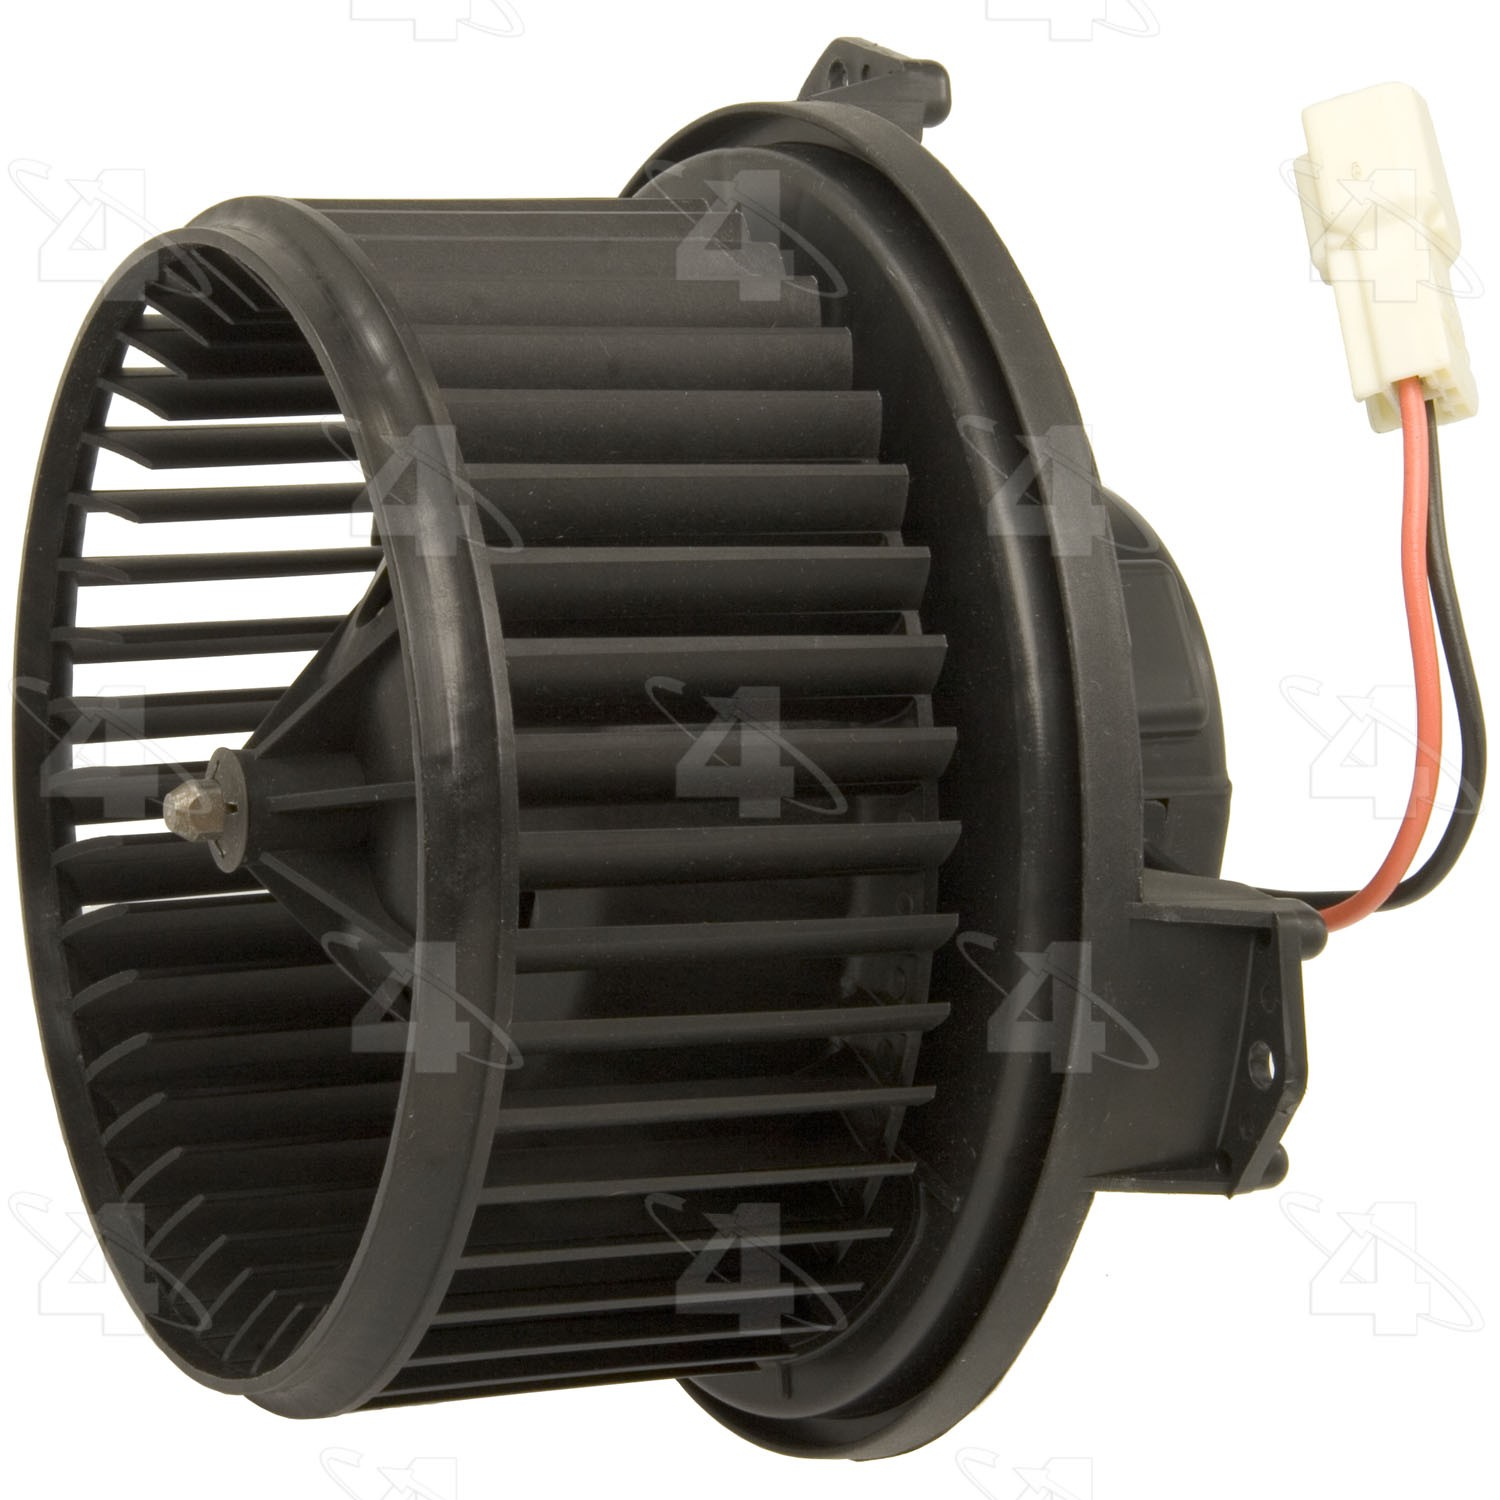 2008 jeep wrangler blower motor for 2008 jeep wrangler motor